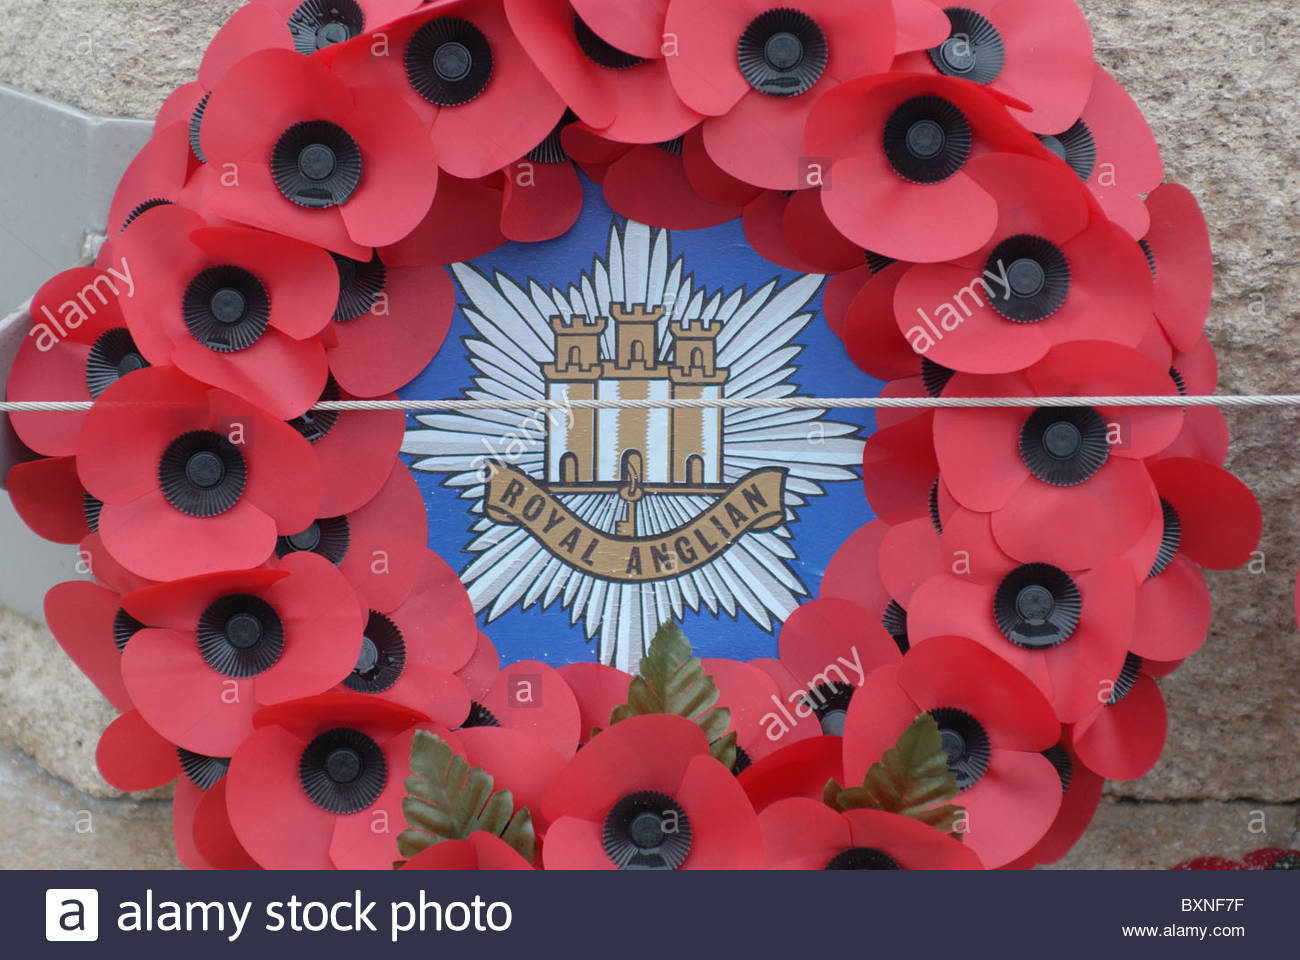 Bury St. Edmunds Suffolk, UK. Poppies on the war memorial from the Royal Anglian regiment. - Stock Image